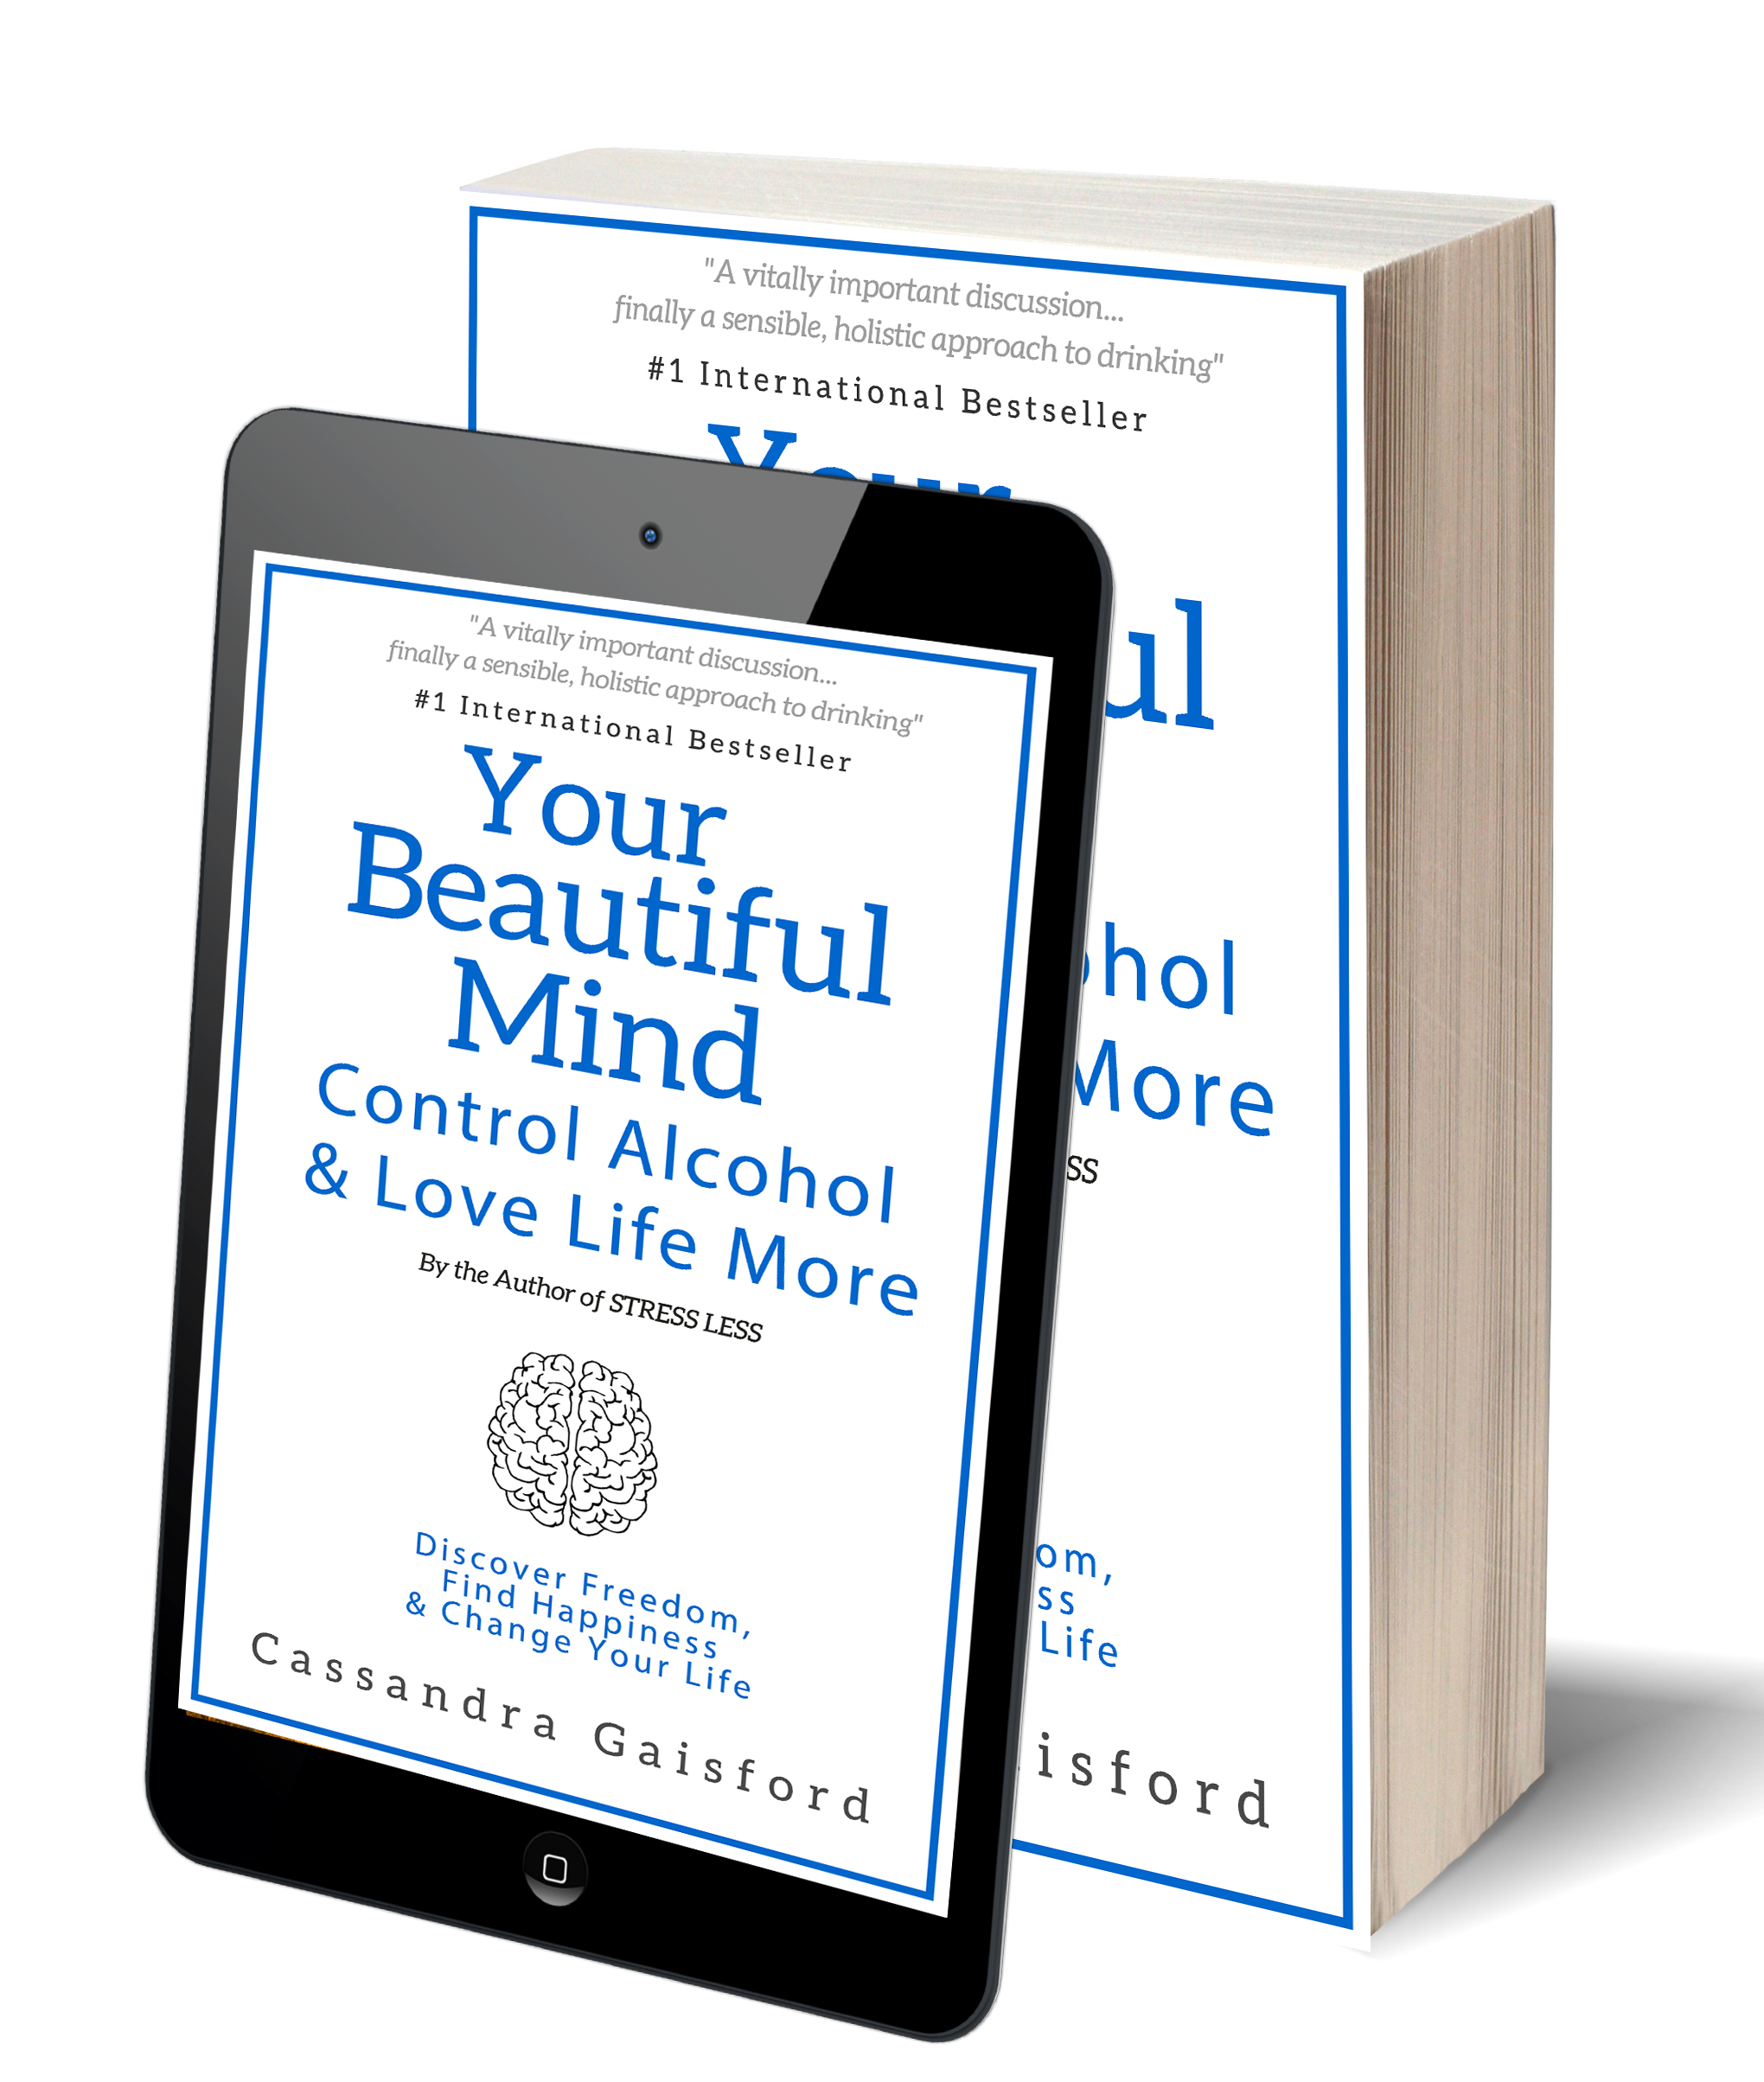 Career happiness cassandra gaisford this is an edited testimonial for cassandra gaisfords new book your beautiful mind control alcohol discover freedom find happiness and change your life fandeluxe Images